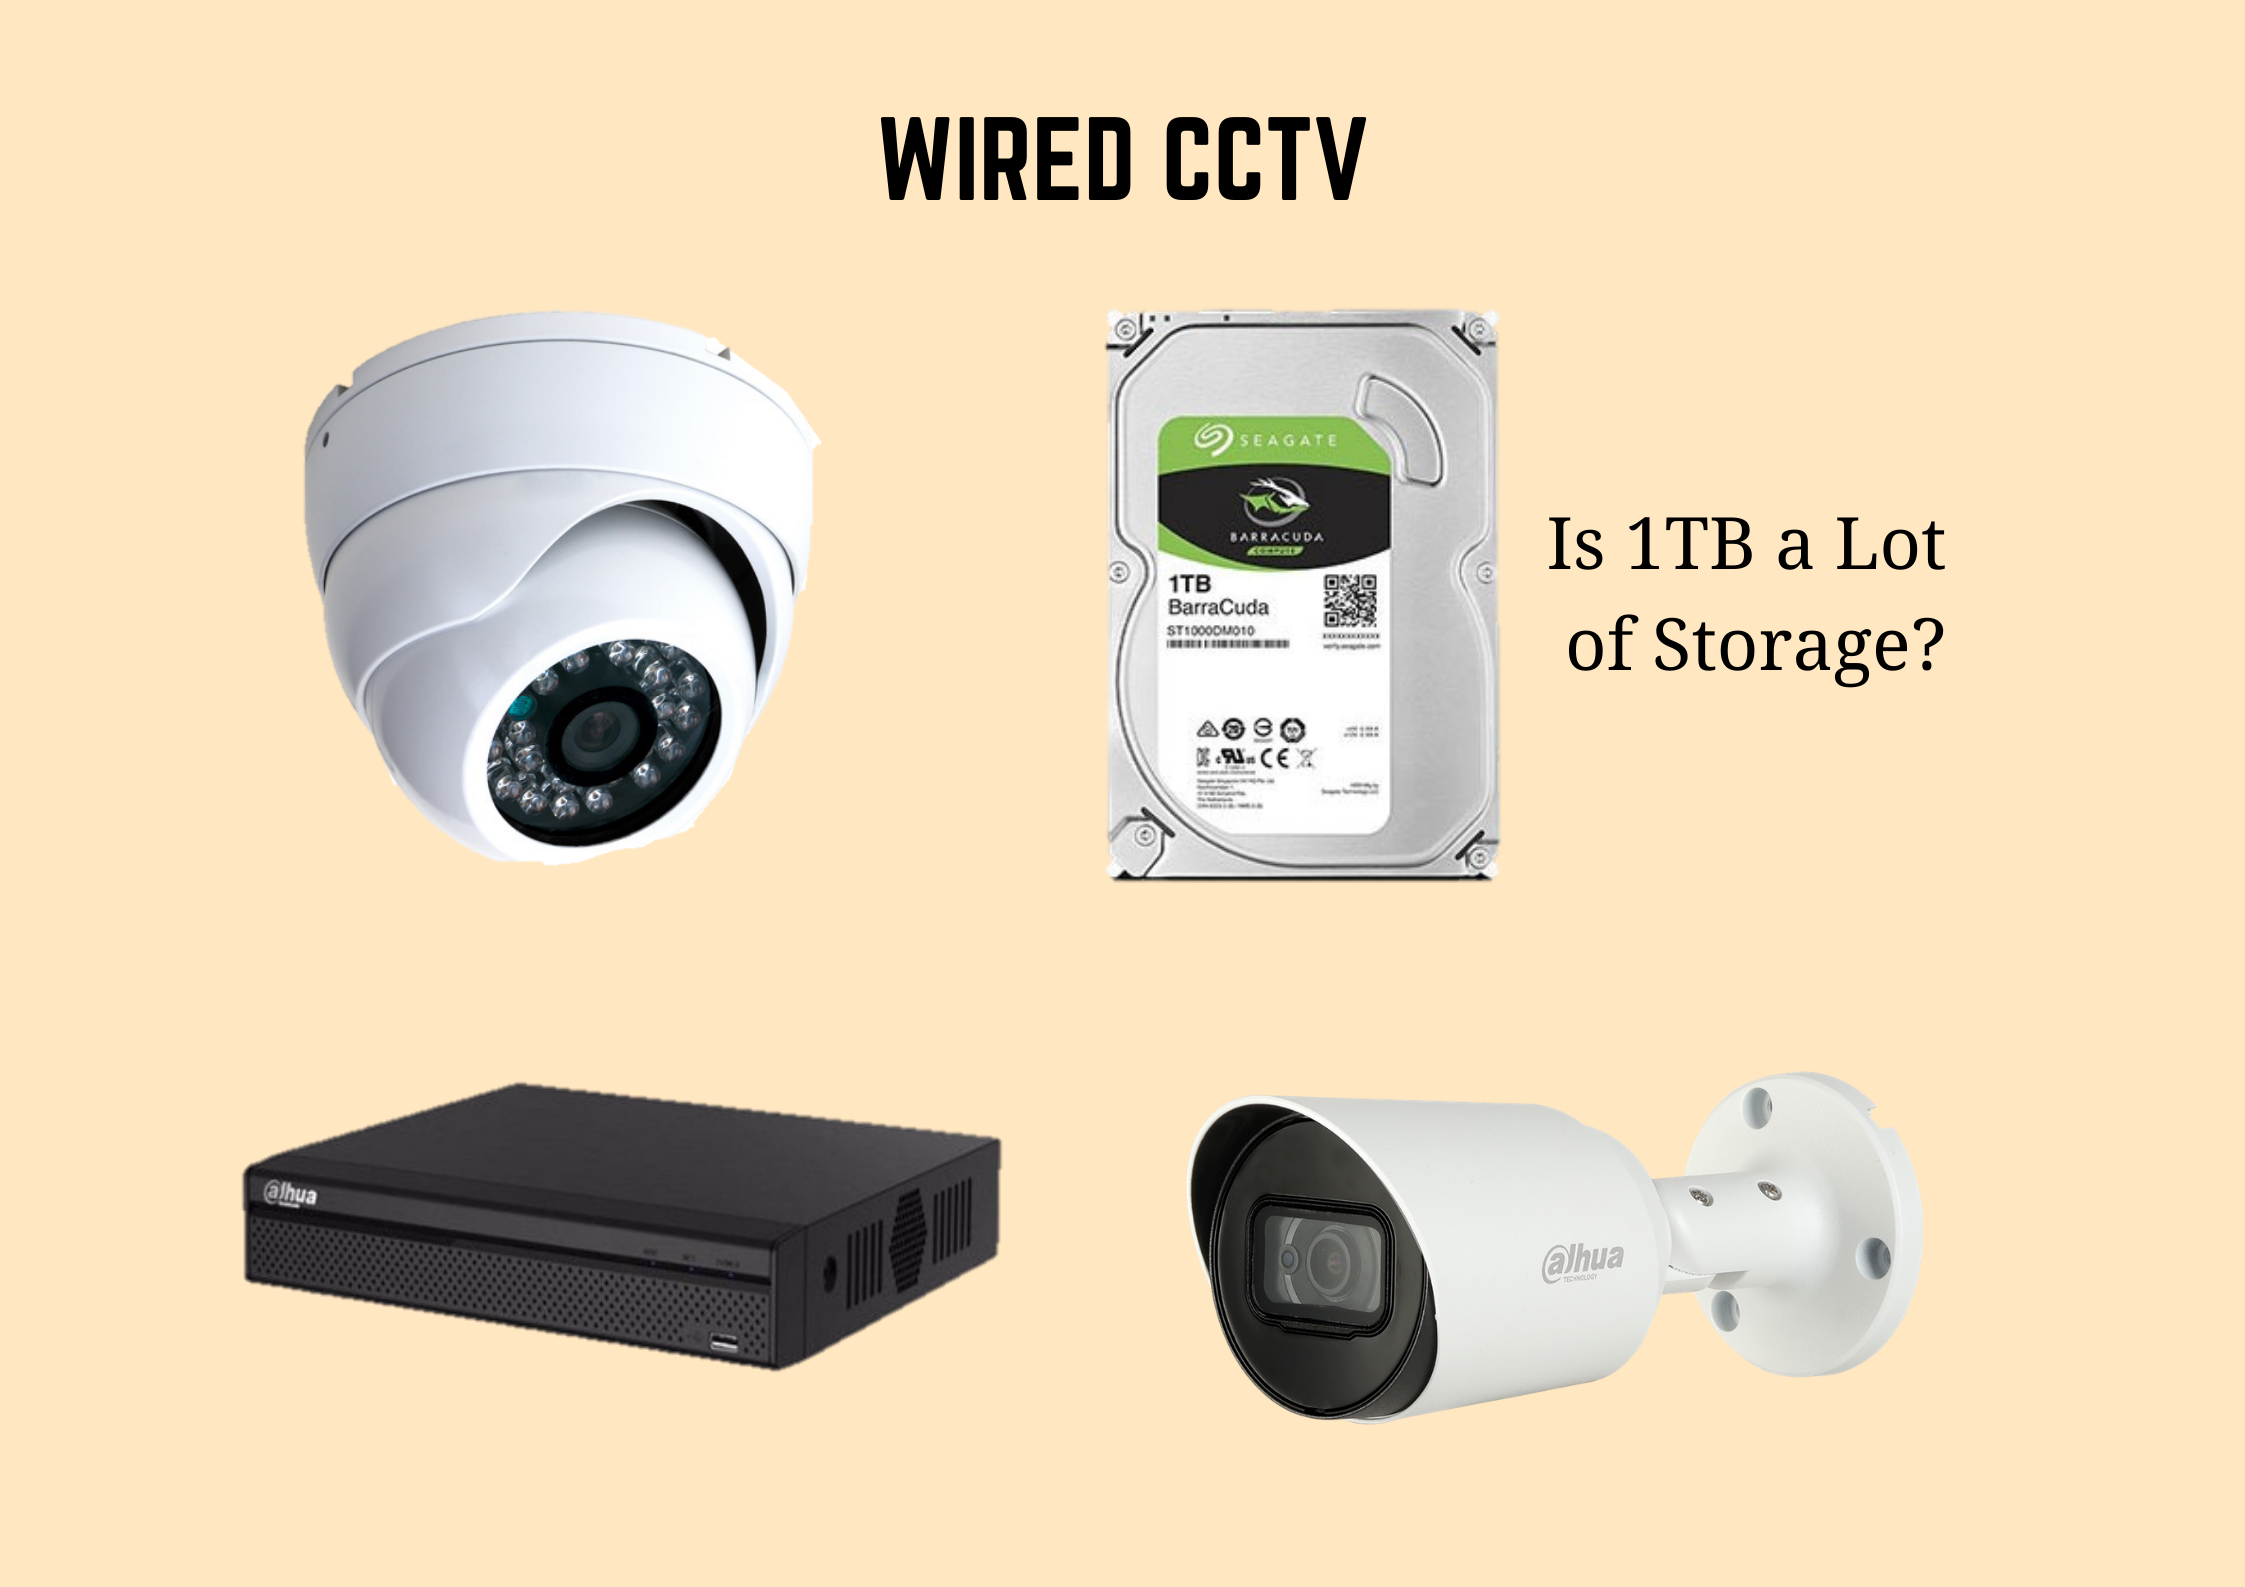 wired cctv